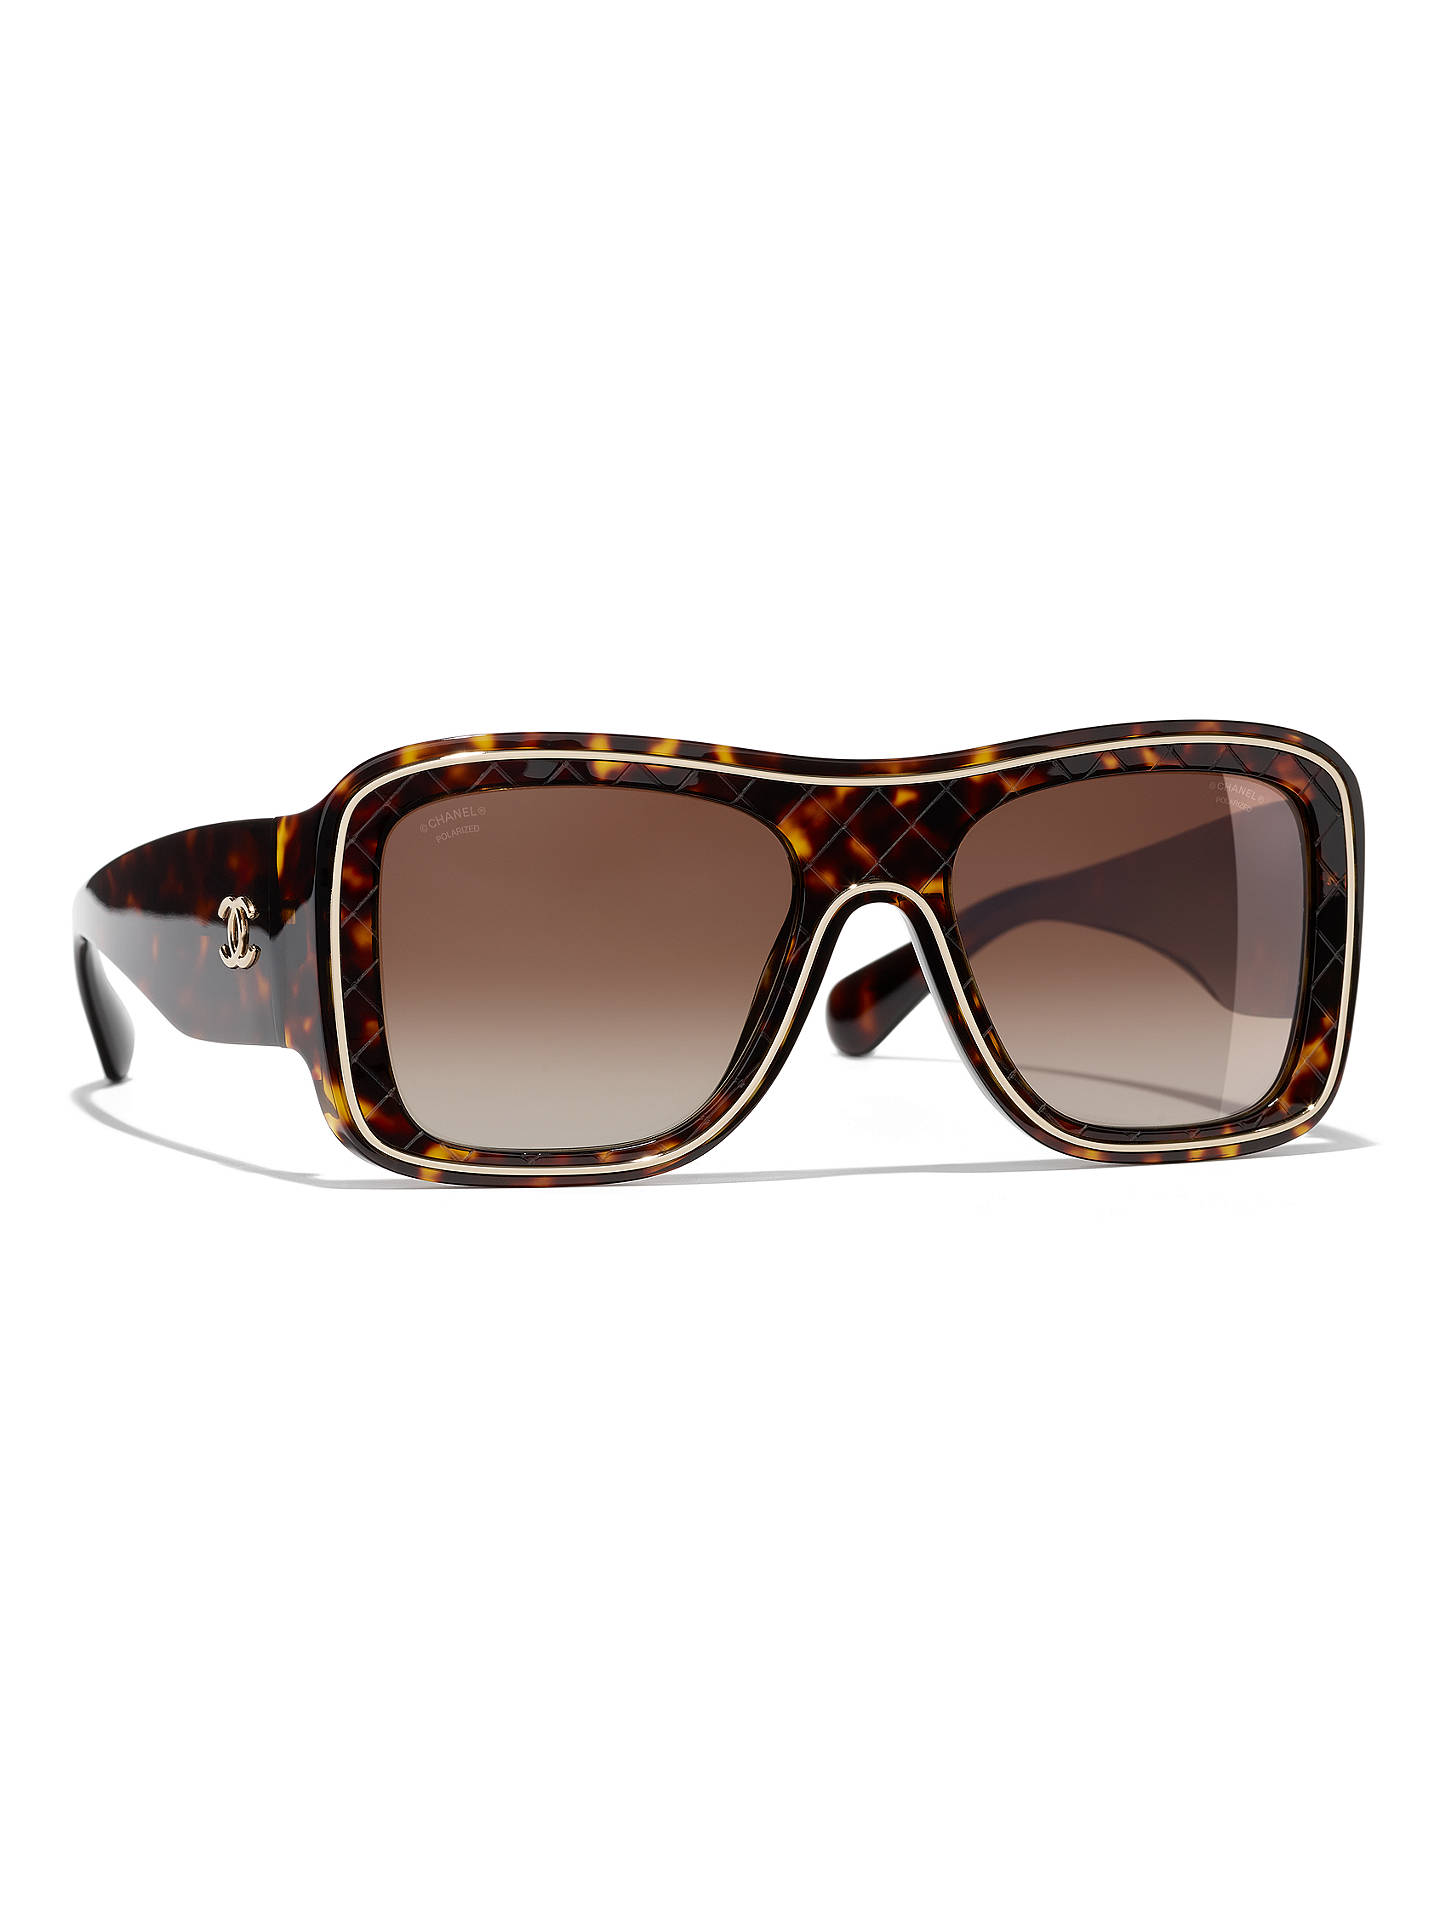 149e3c988a7 BuyCHANEL Square Sunglasses CH5395 Tortoiseshell Brown Gradient Online at  johnlewis.com ...